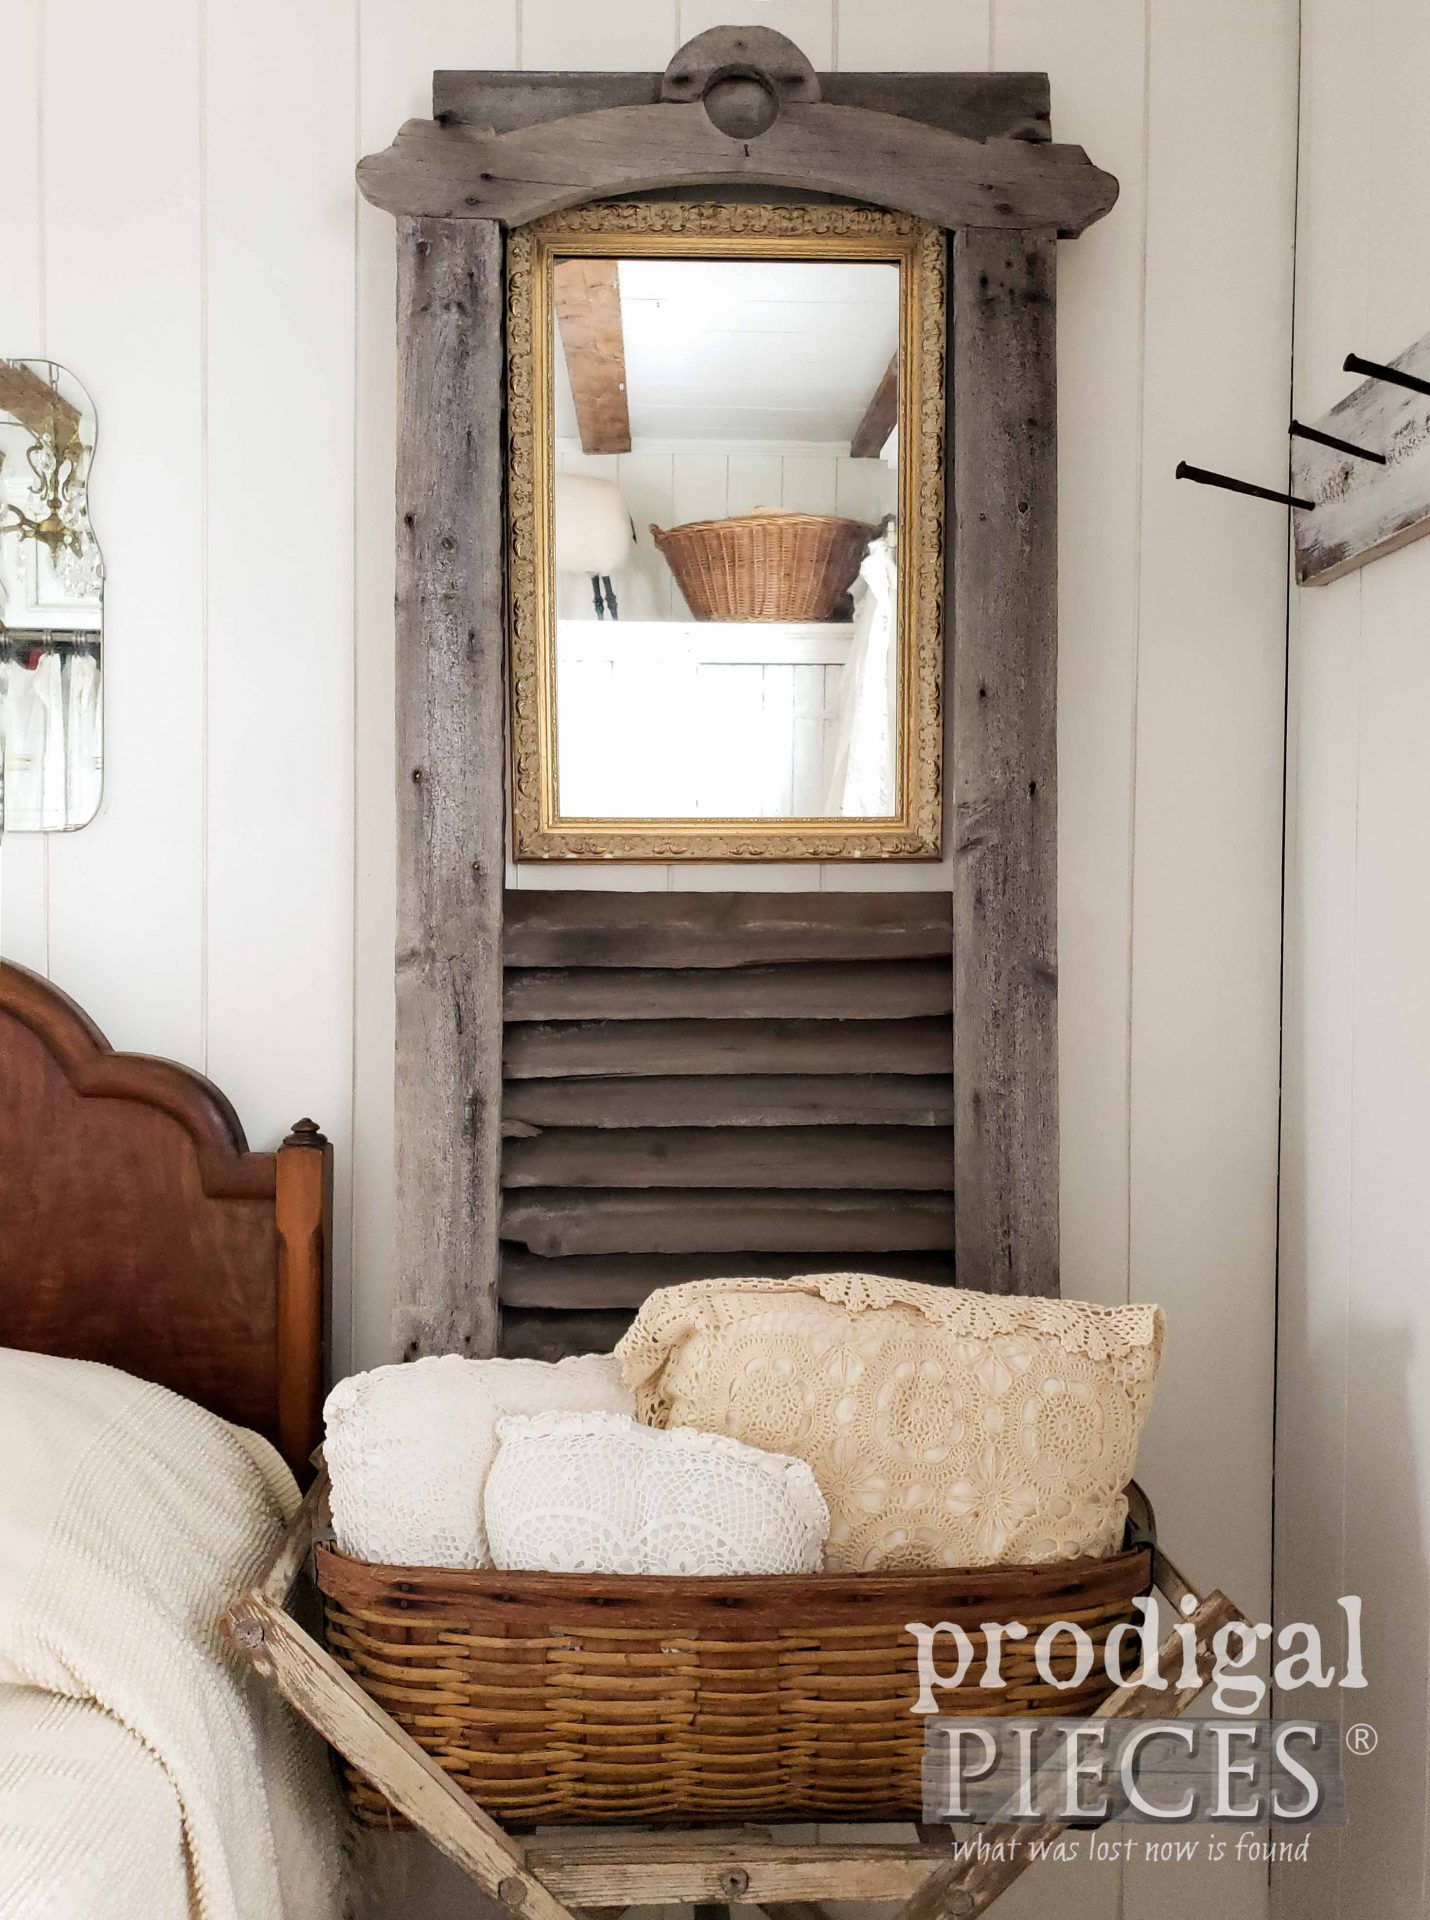 Rustic Farmhouse Antique Barn Vent Decor by Larissa of Prodigal Pieces | prodigalpieces.com #prodigalpieces #farmhouse #home #homedecor